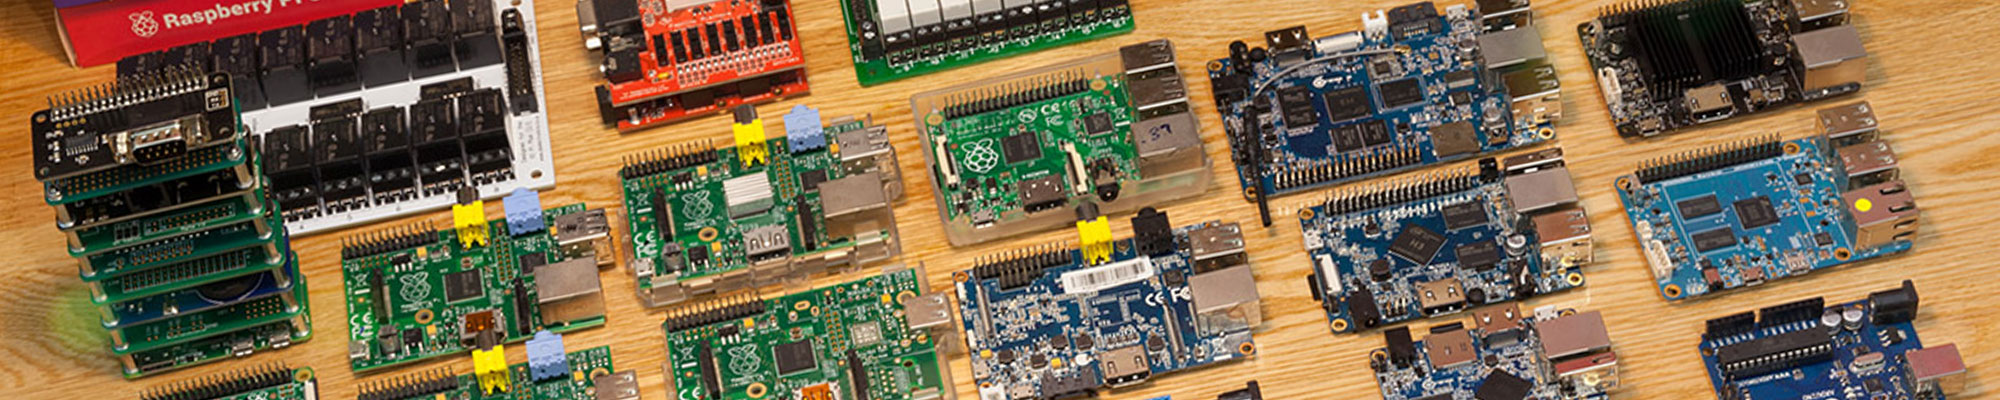 Raspberry Pi, Odroid, Orange Pi and Asus Tinker image